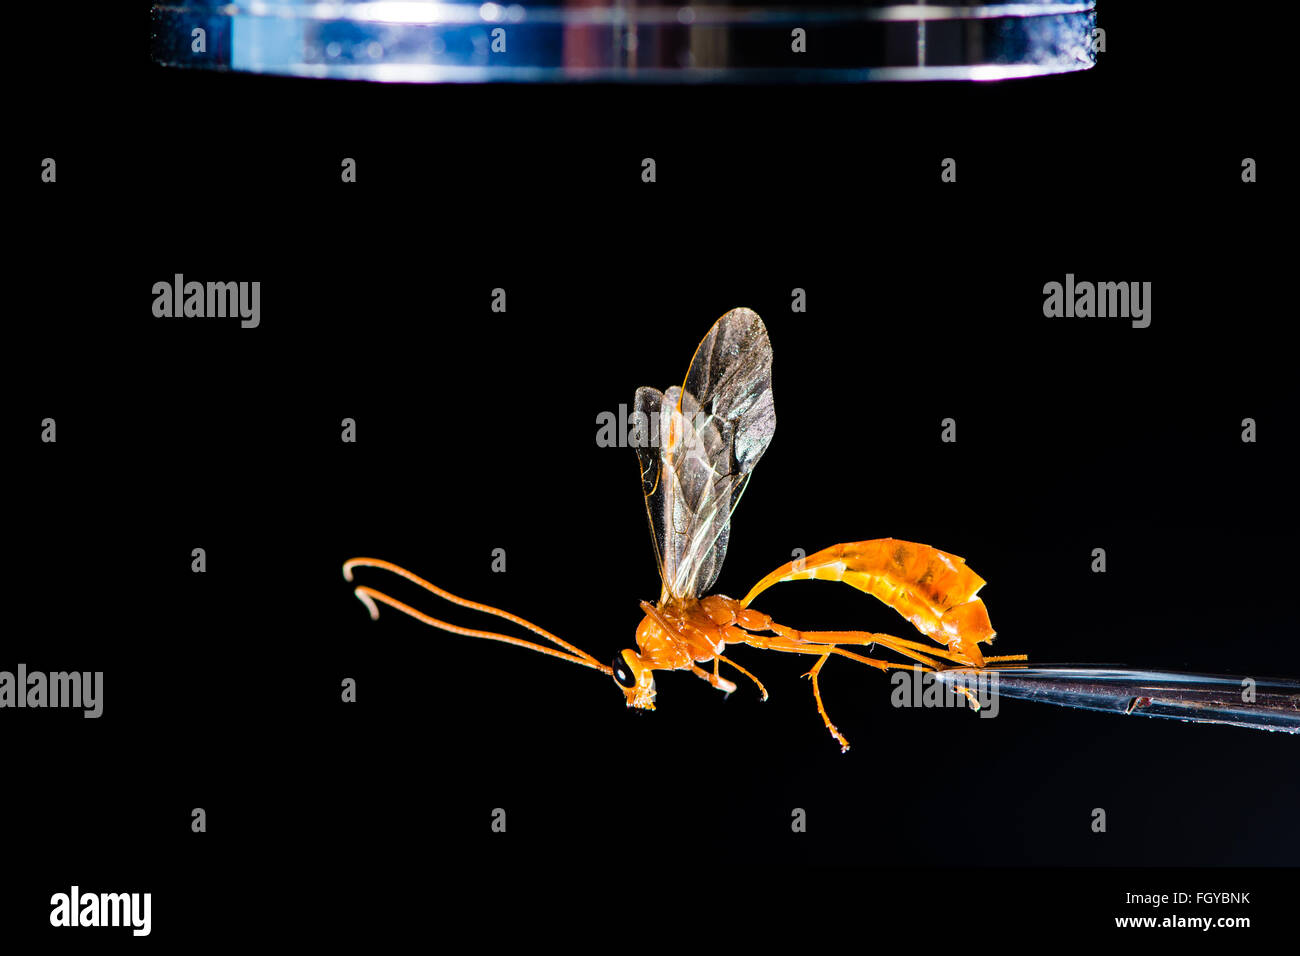 A microscope and forceps used during examination of Ophion luteus, an Ichneumon wasp - Stock Image